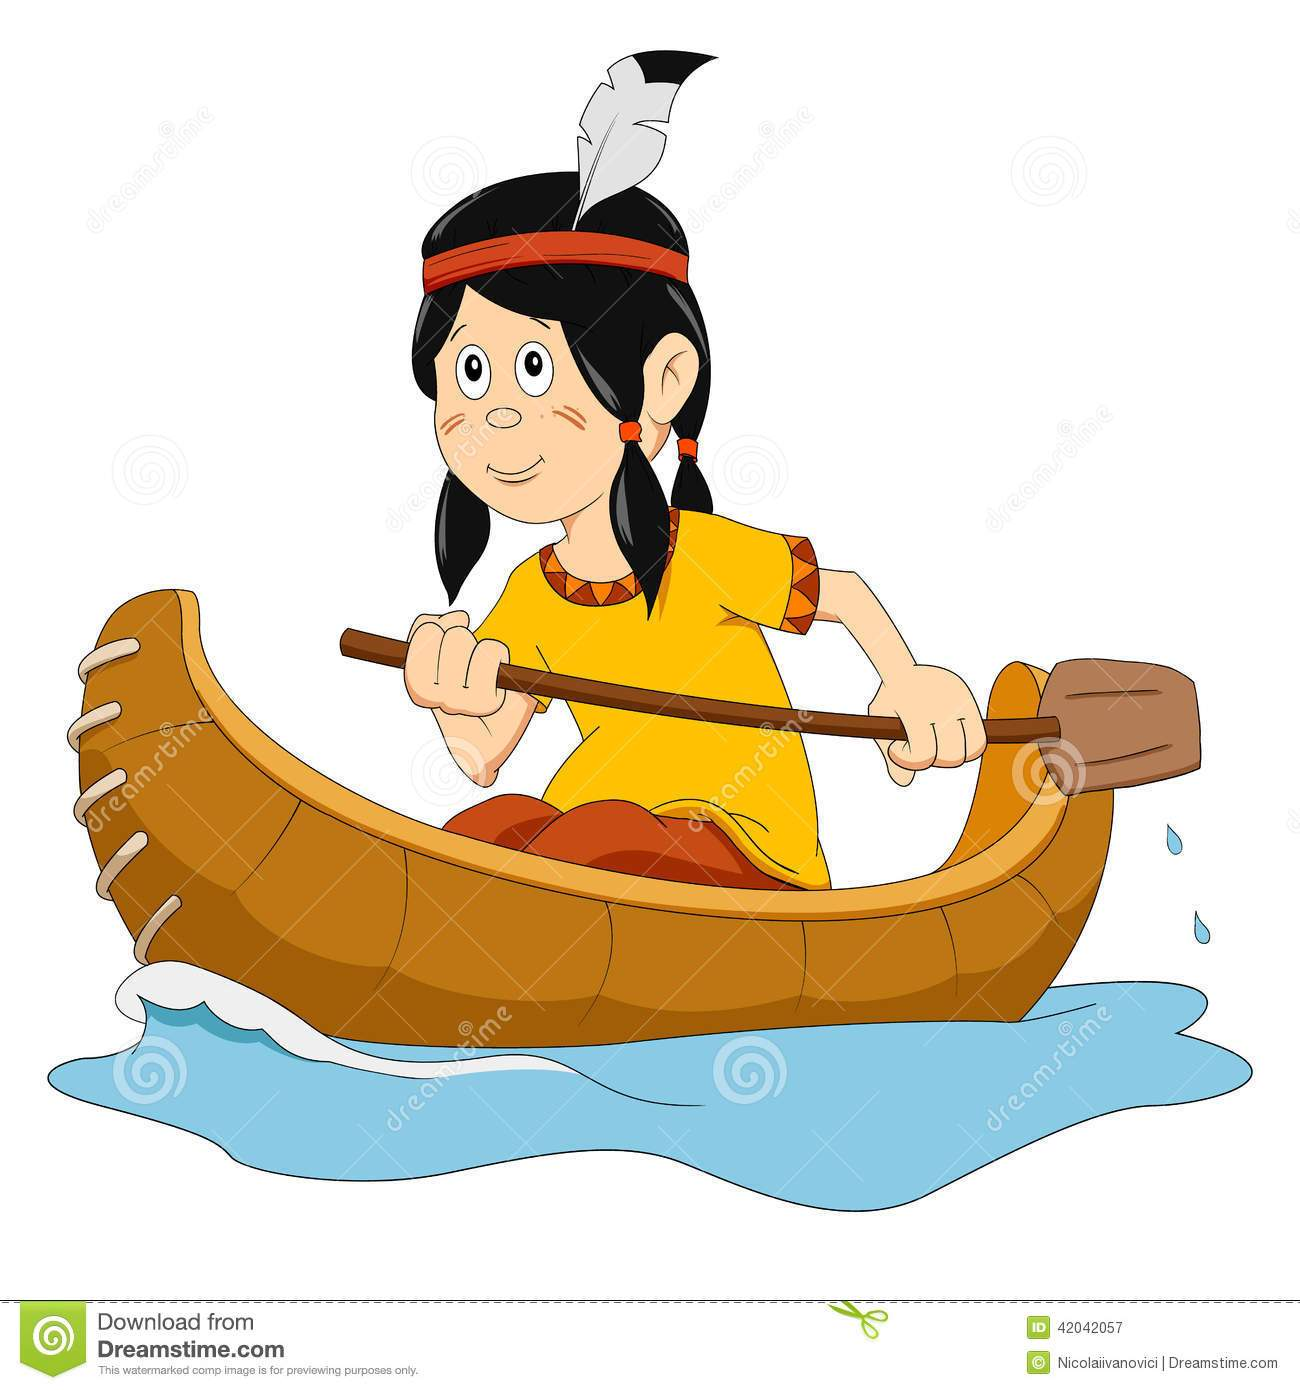 Indian canoe clipart 4 » Clipart Portal.